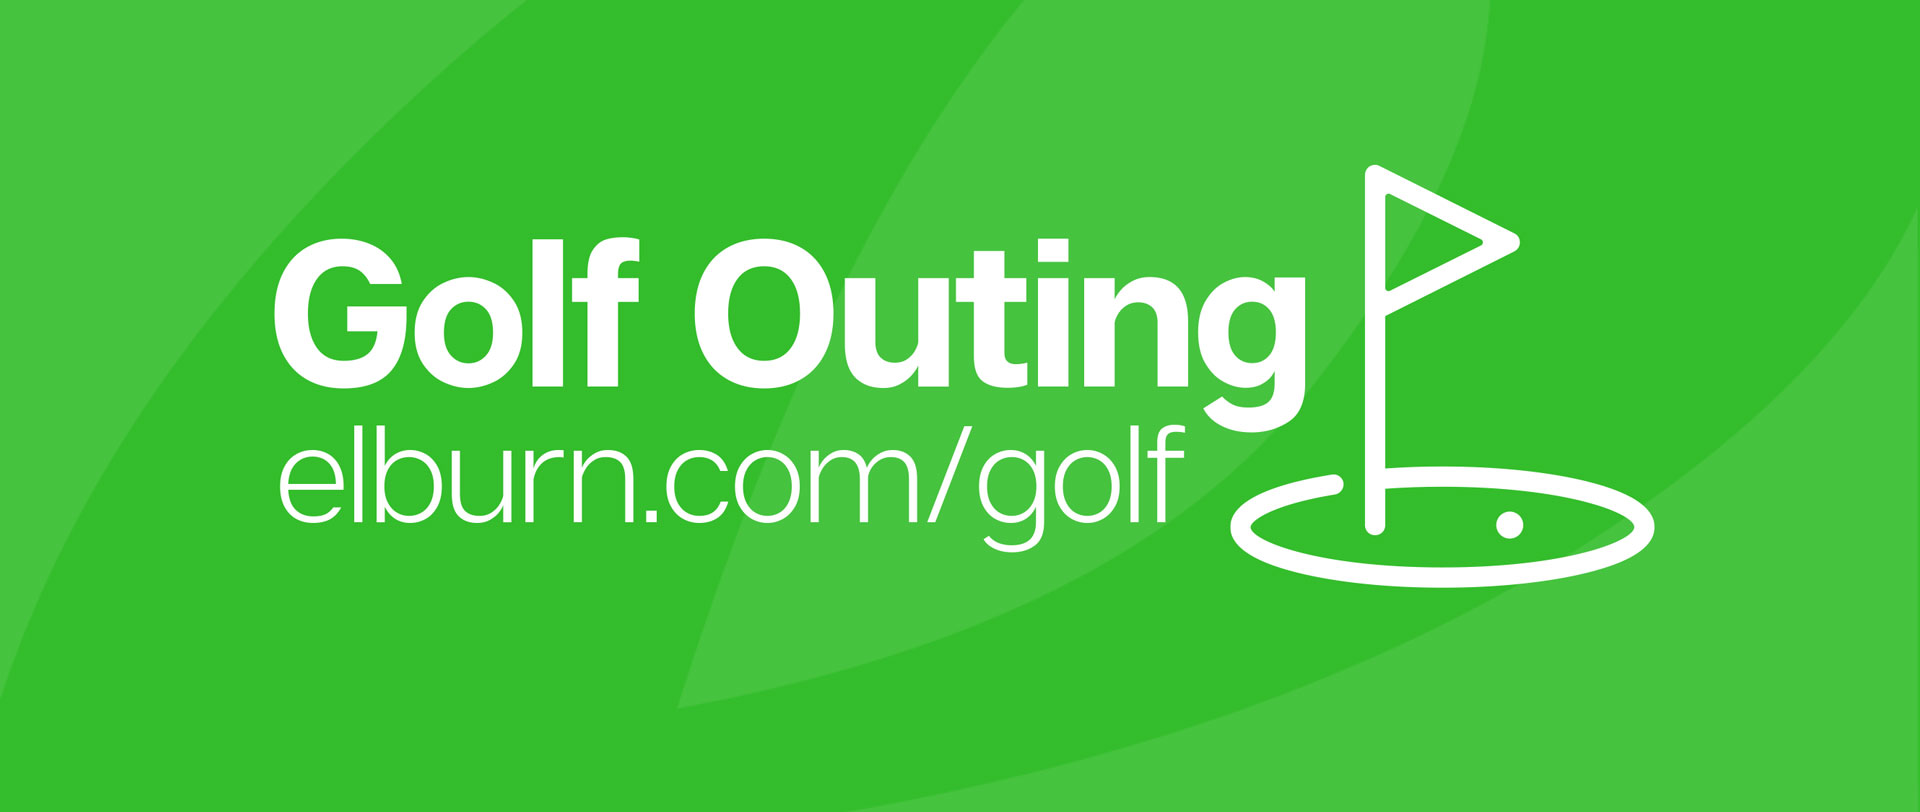 Elburn Chamber Golf Outing Facebook Cover